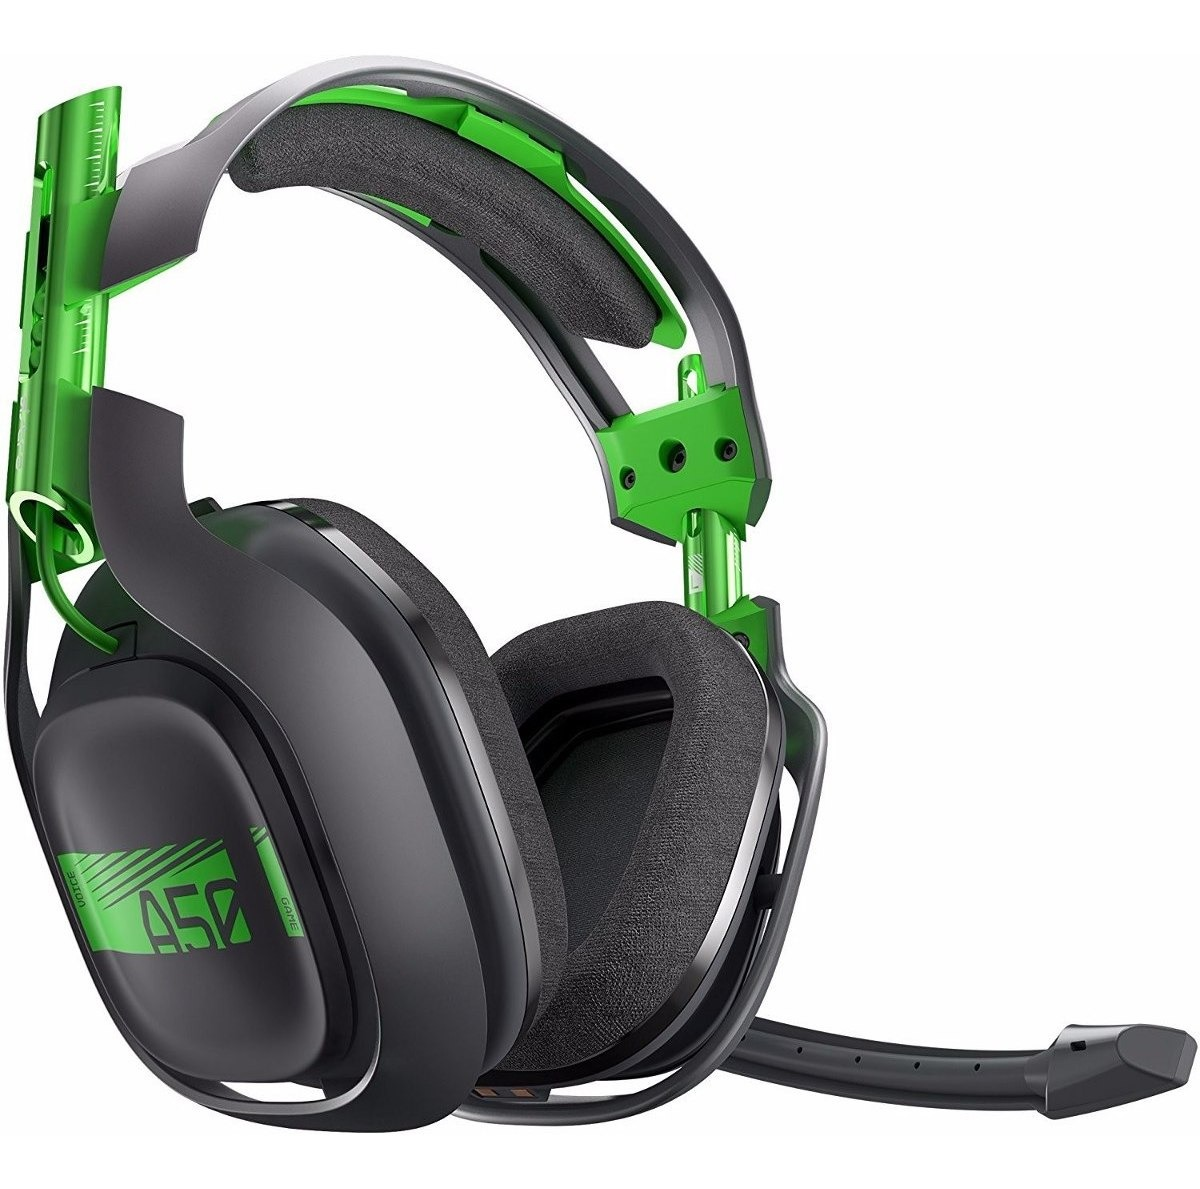 [Tech] Can't get game sound on Astro a50's : xboxone